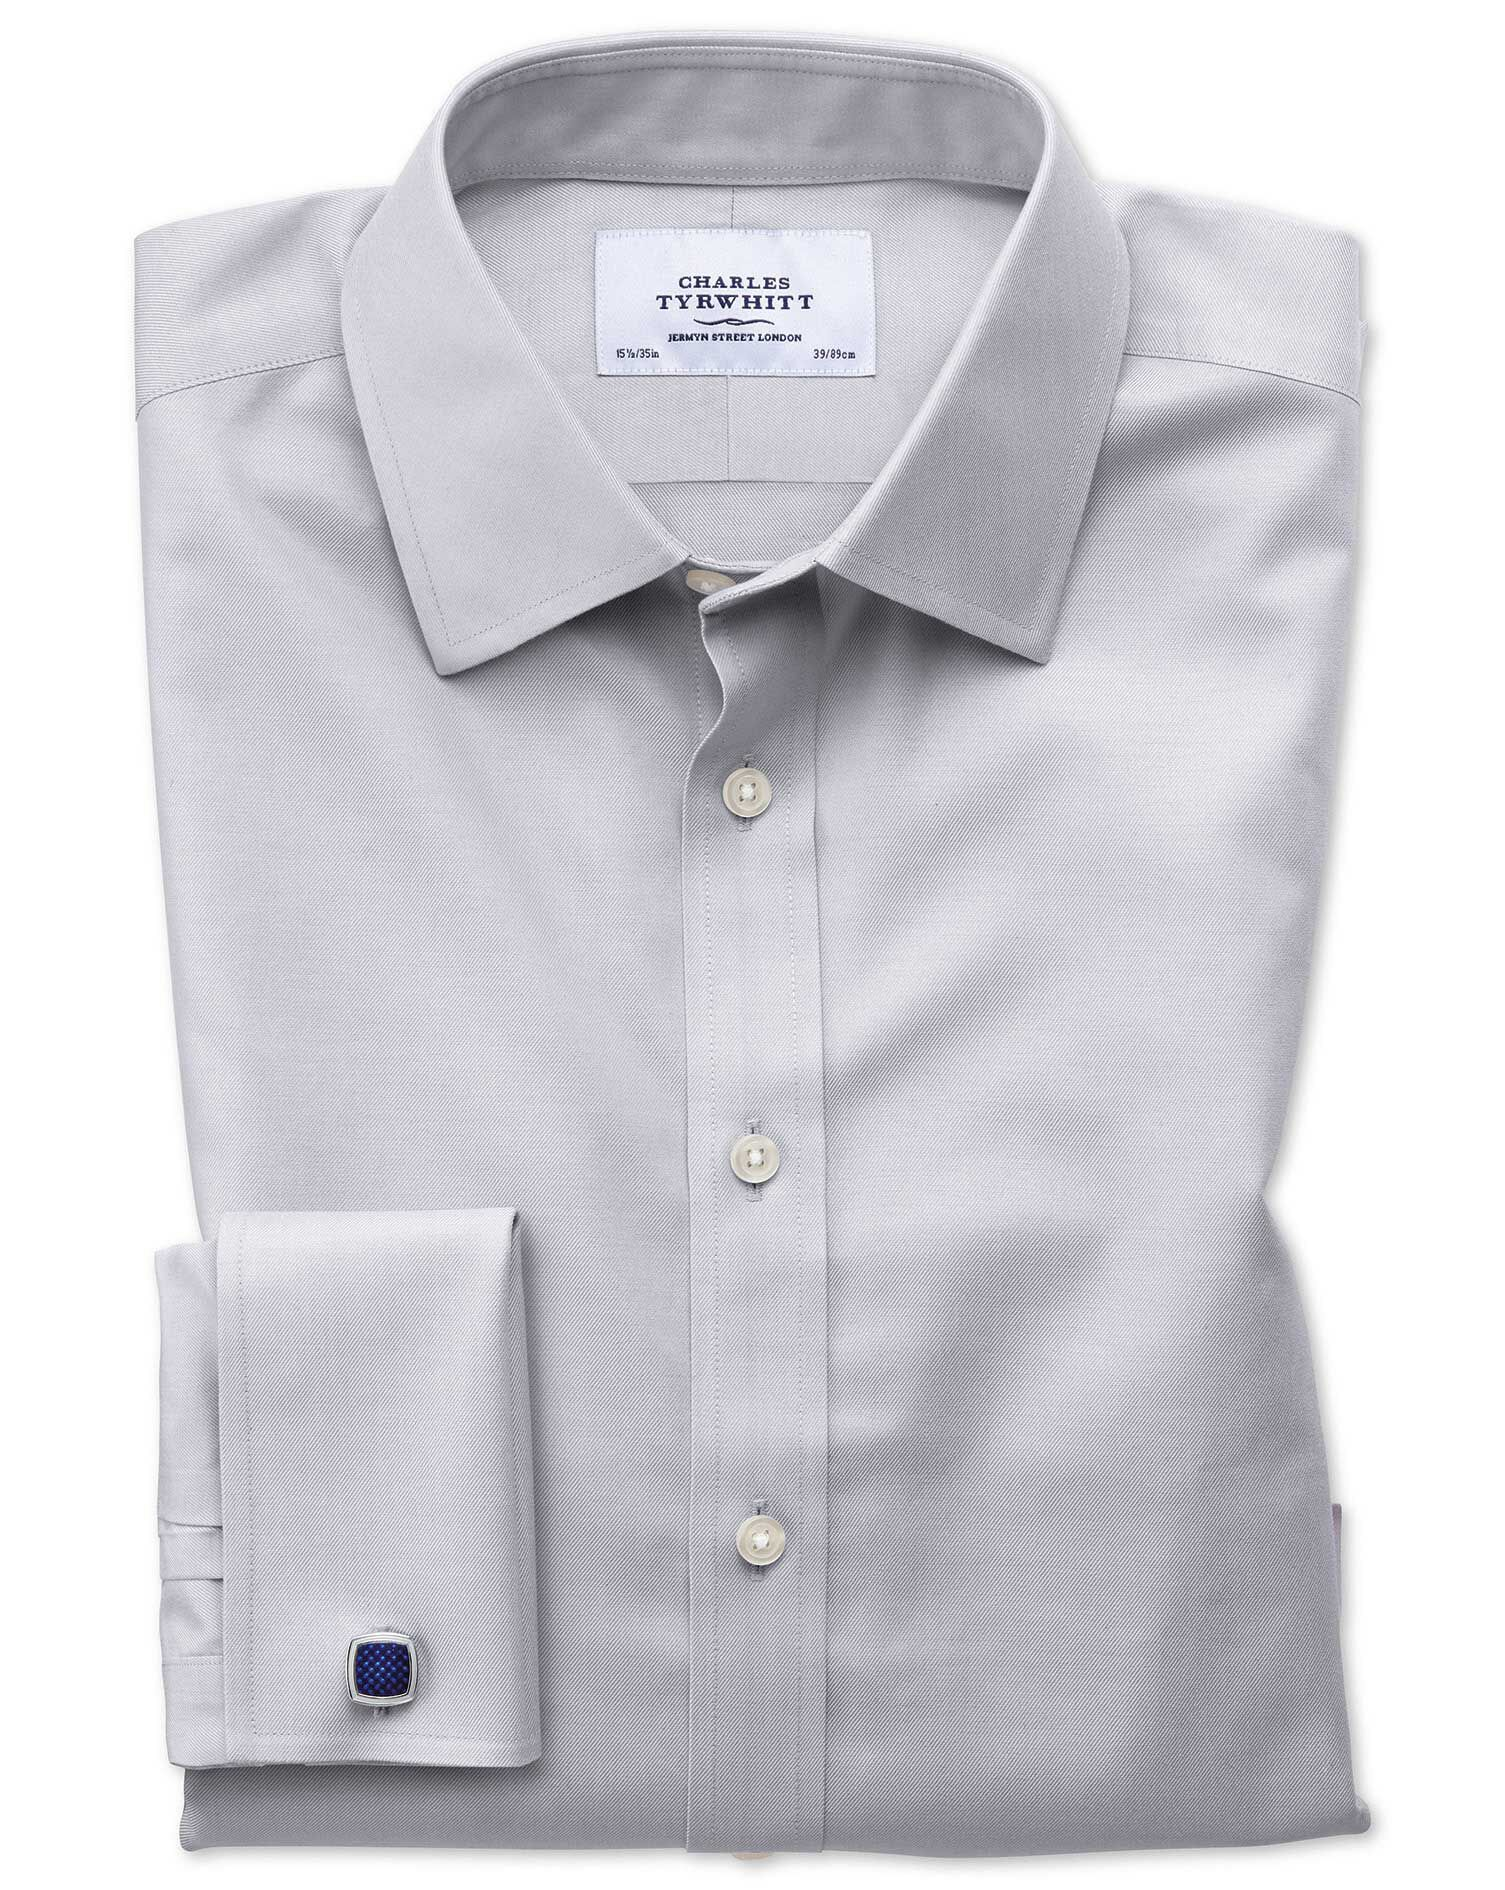 Classic Fit Non-Iron Twill Grey Cotton Formal Shirt Double Cuff Size 17.5/35 by Charles Tyrwhitt